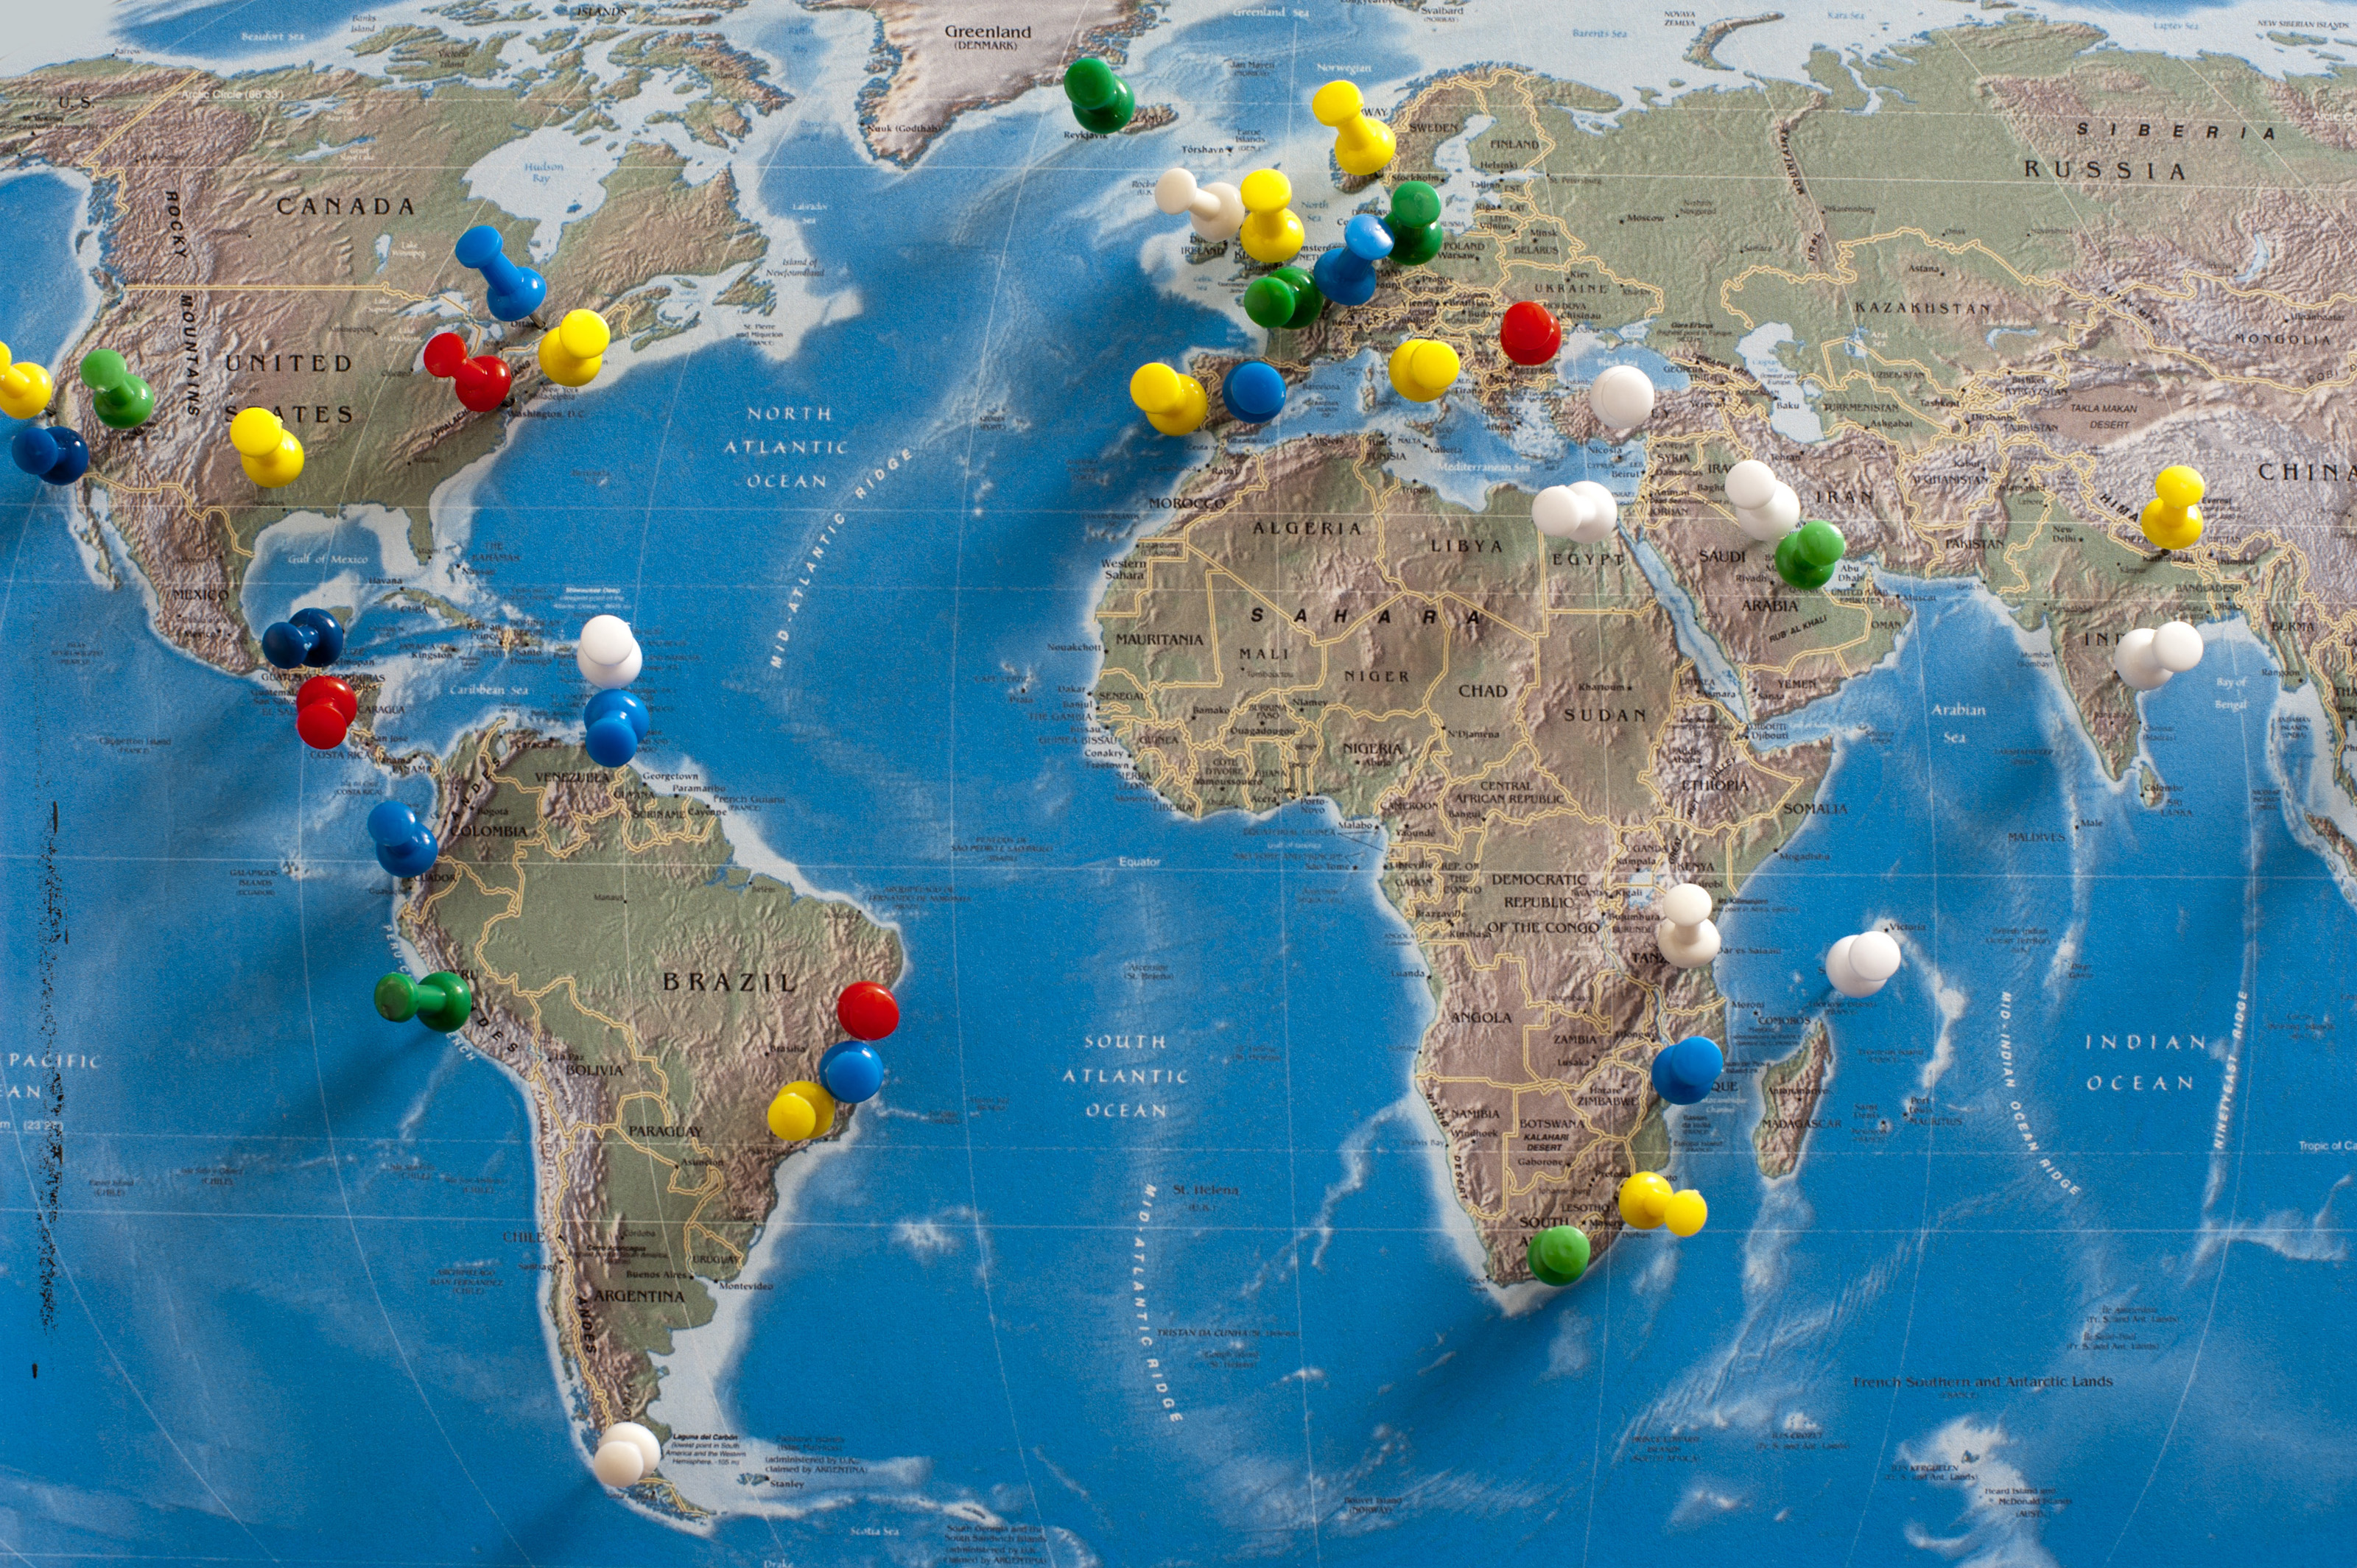 Free stock photo 10699 multi colored thumb tacks inserted in world multi colored thumb tacks inserted in various locations on wall map of the world gumiabroncs